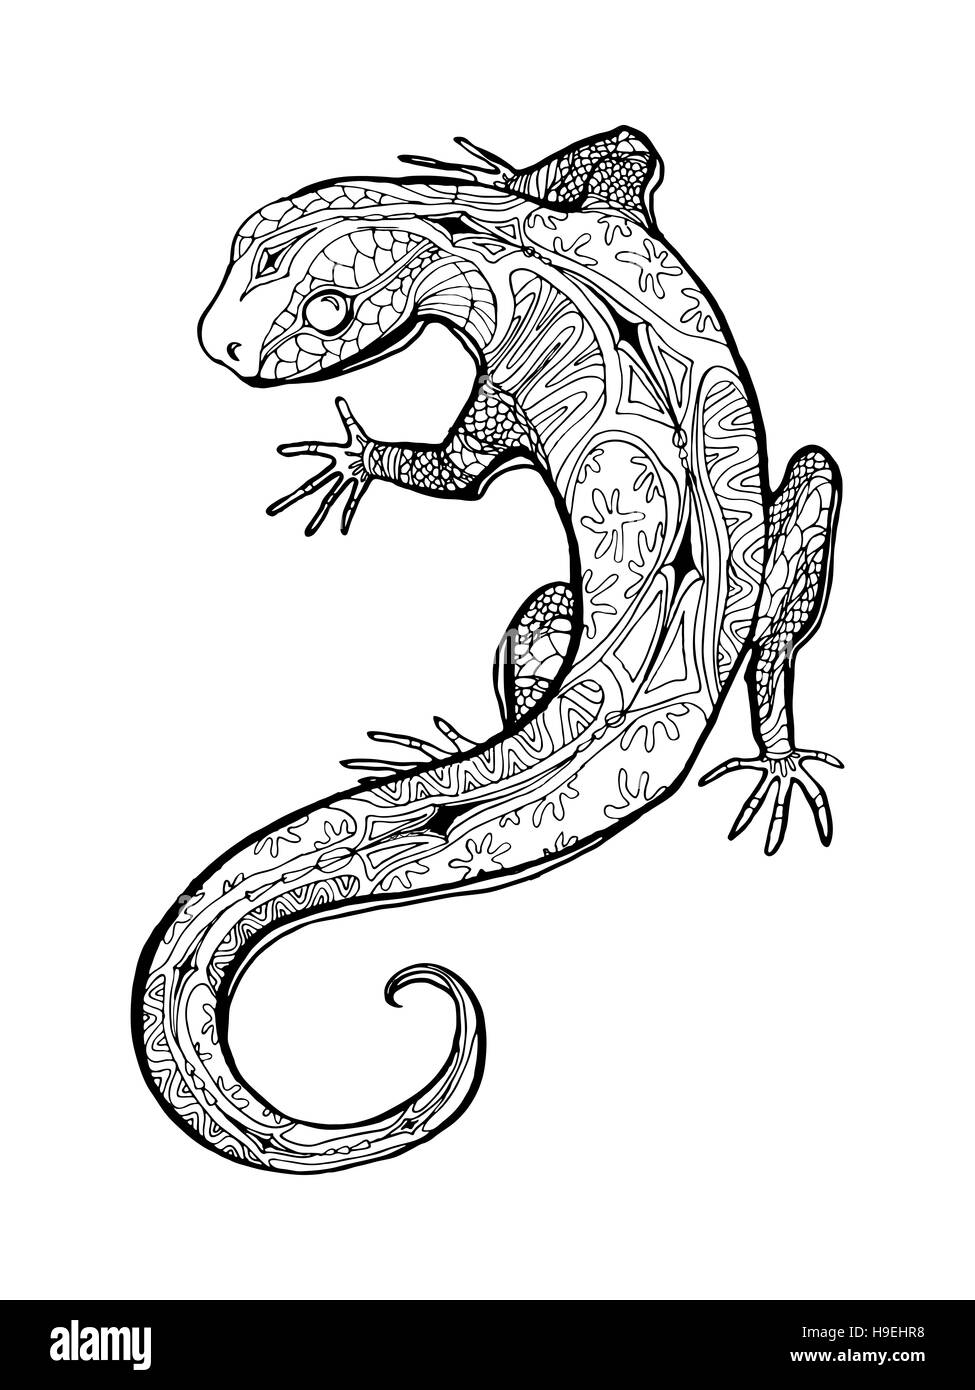 Lizard Tropical Illustration For Adult Coloring Book Hand Drawn Line Art